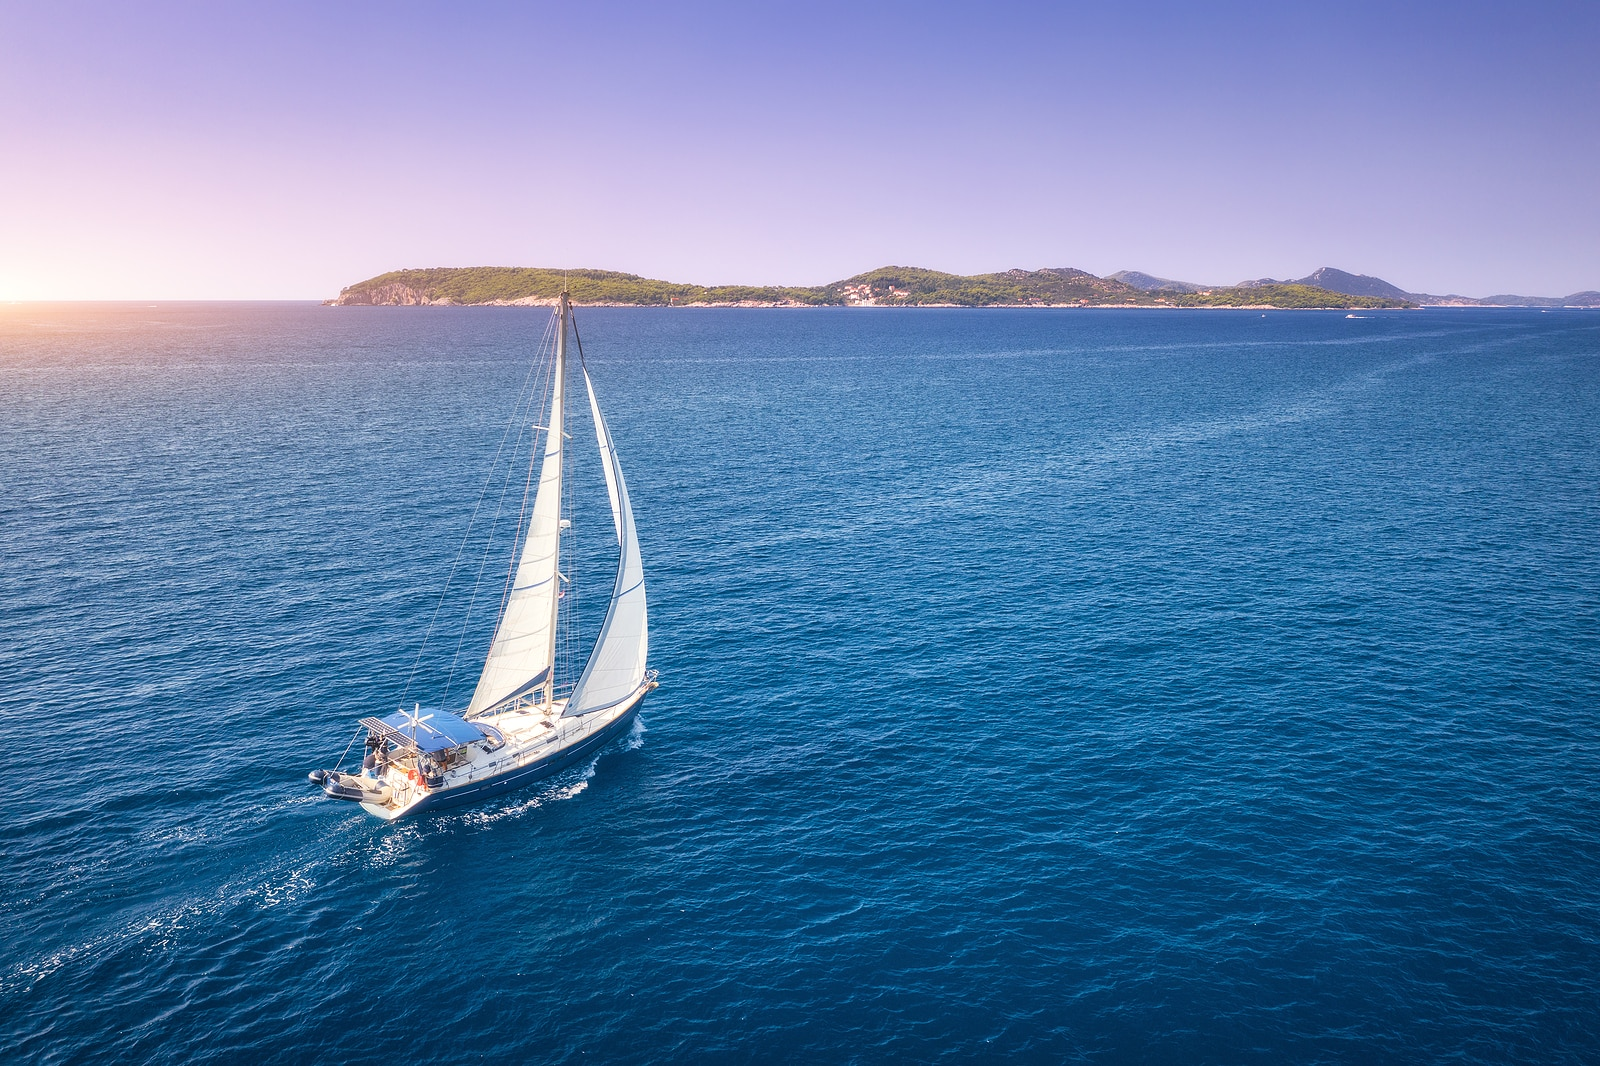 Aerial view of beautiful white sailboat in blue sea